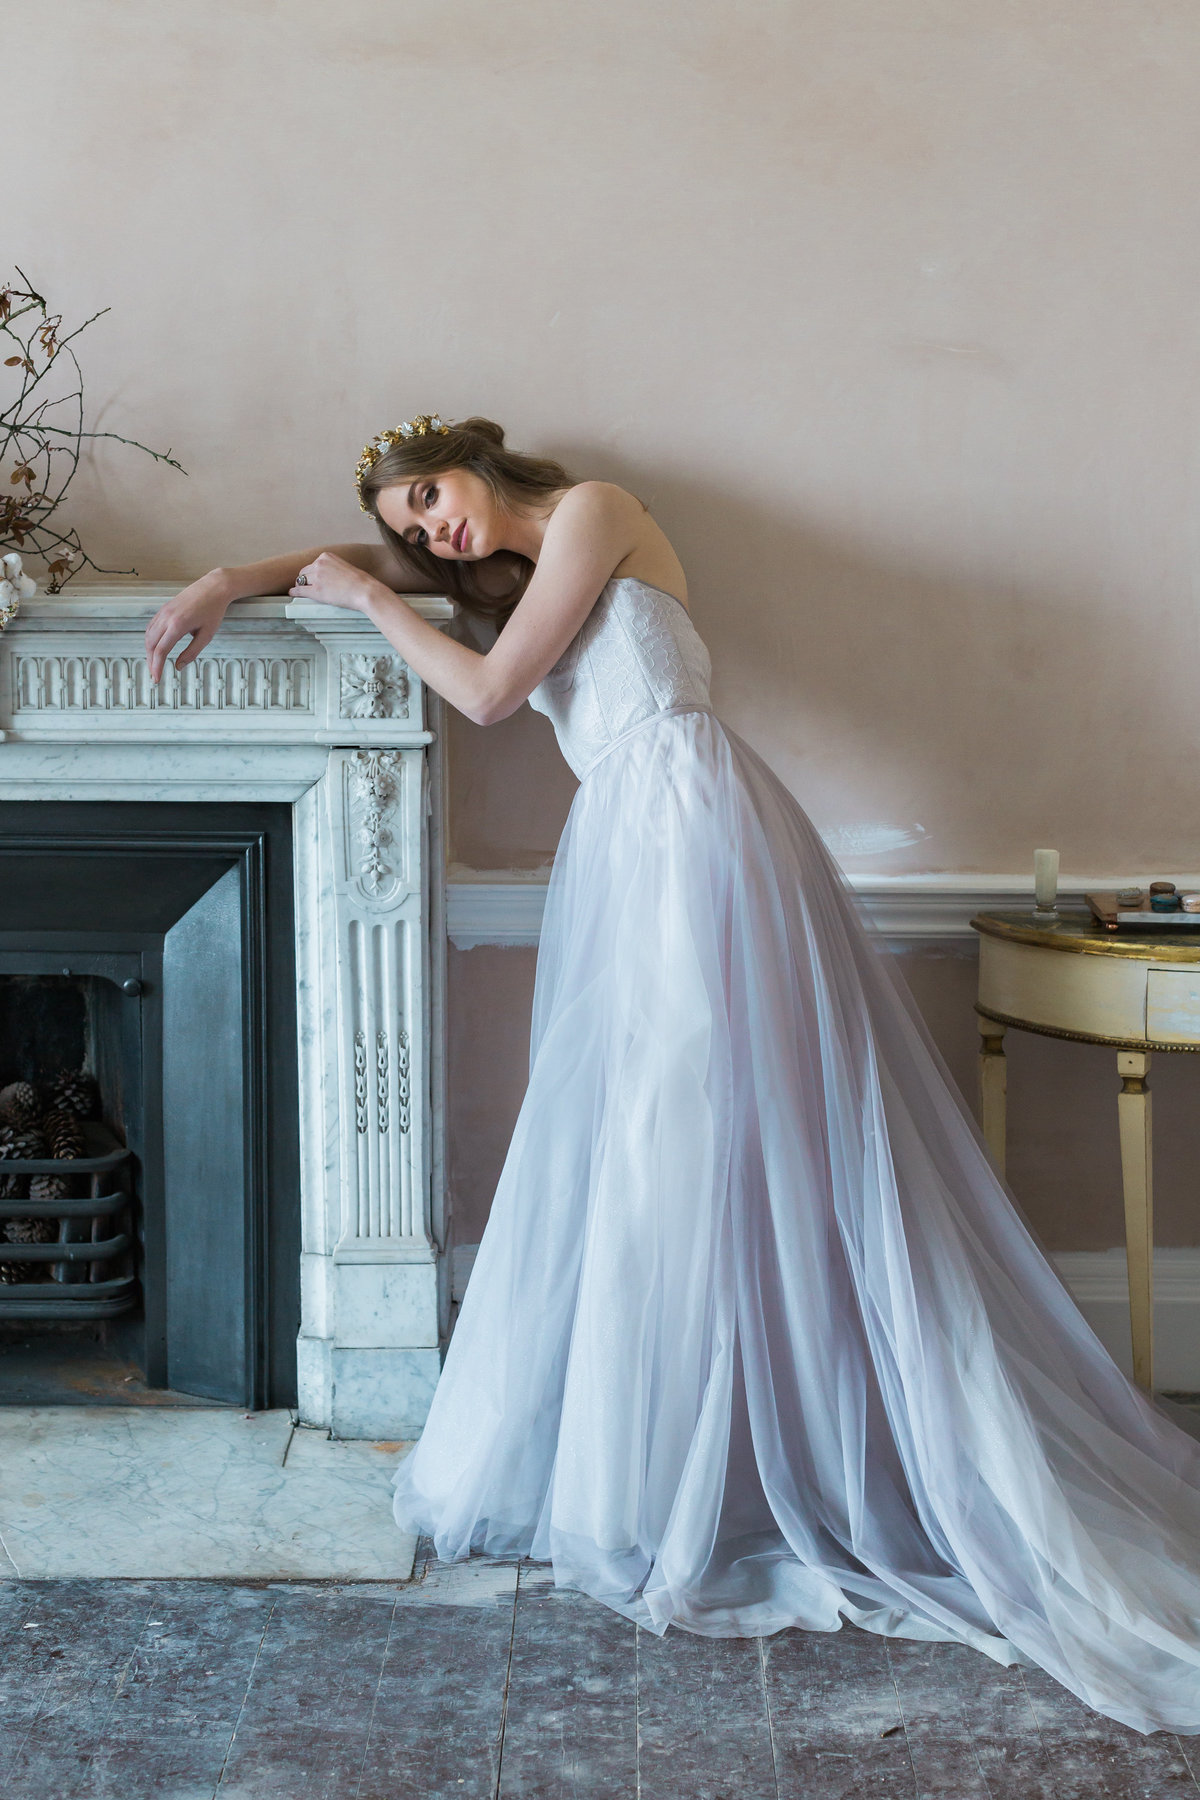 The Stars Inside - Somerley House Photoshoot - Siobhan H Photography (206)